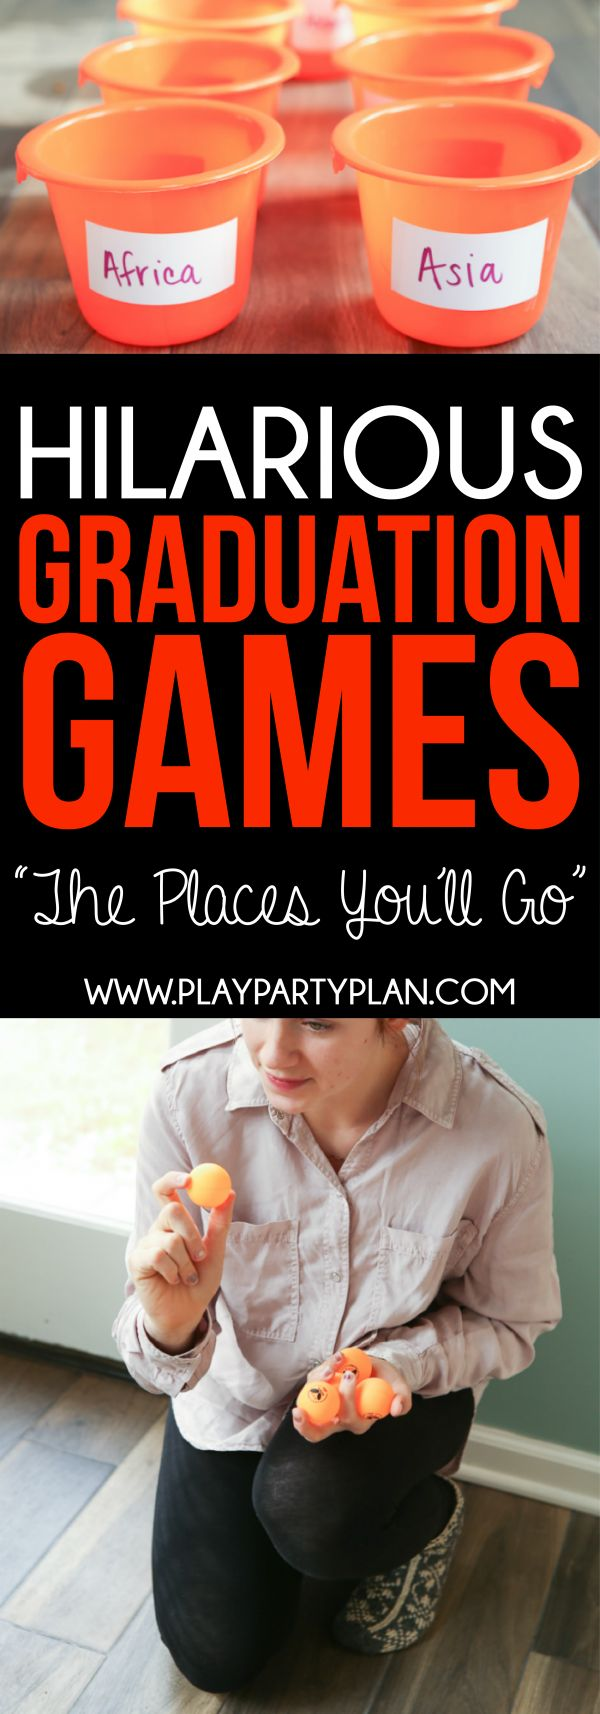 17 Awesome Graduation Party